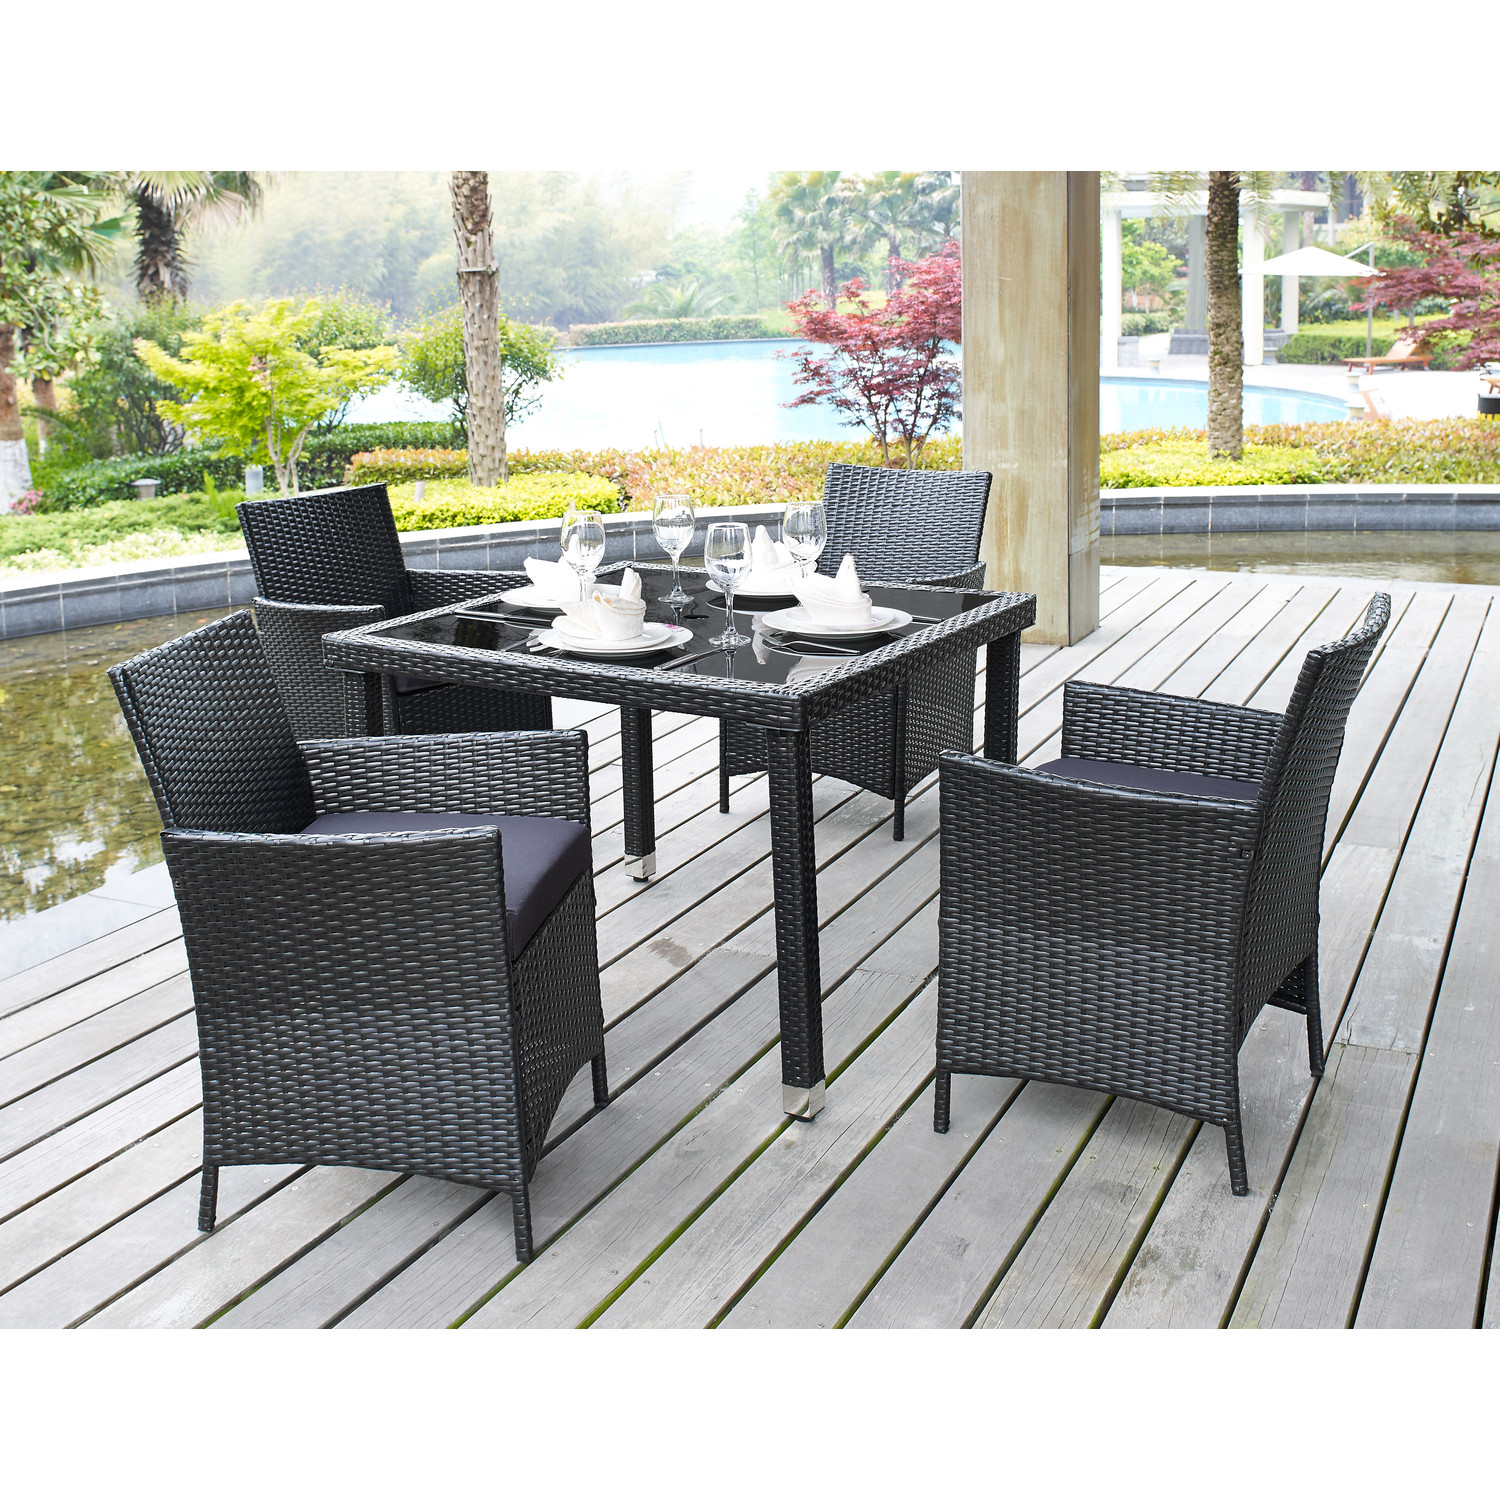 Places to go for affordable modern outdoor furniture for Outdoor patio furniture